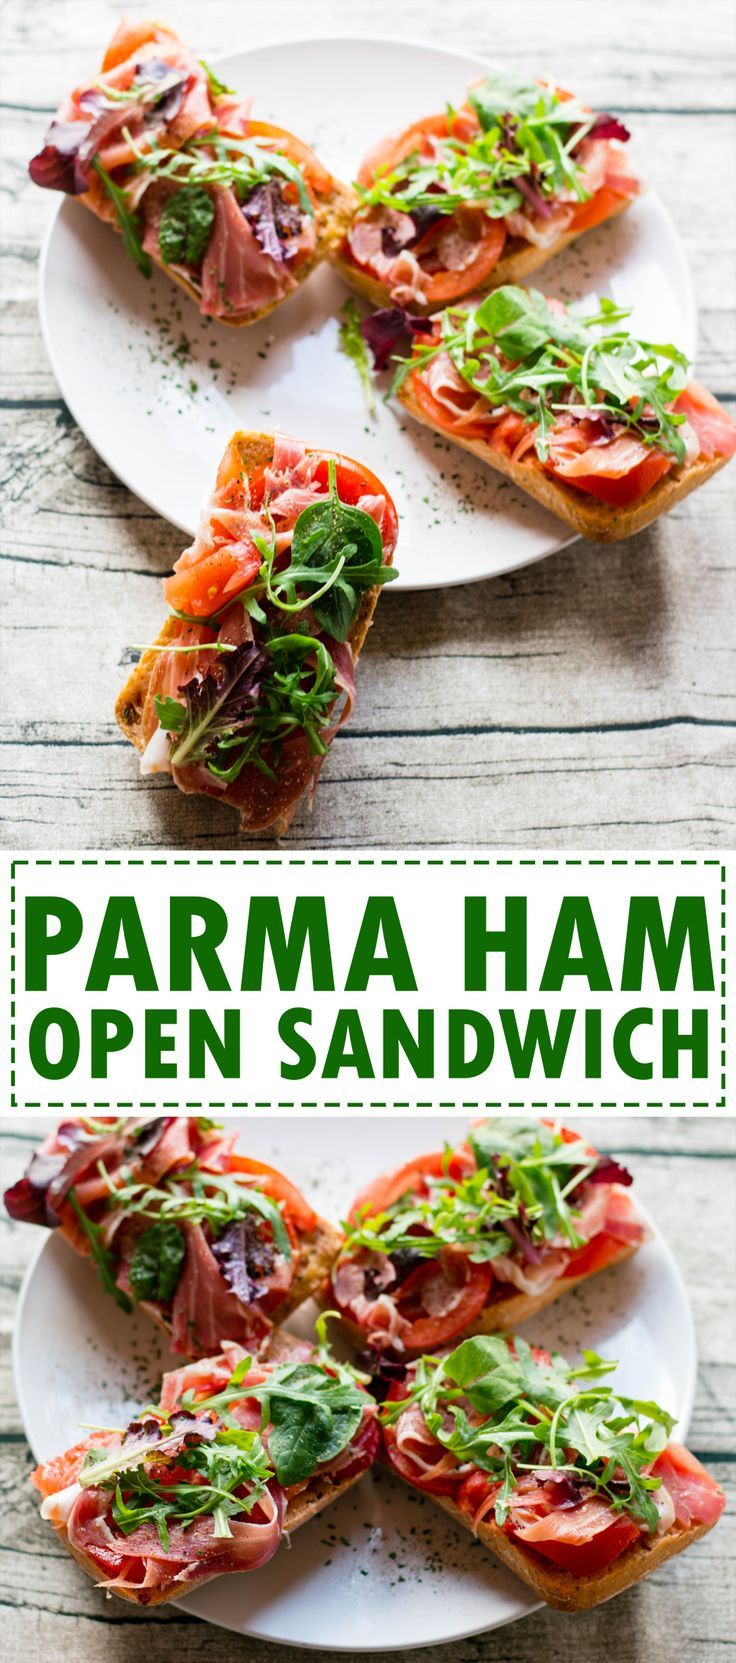 Parma ham open sandwich healthy and light meal can be prepared in parma ham open sandwich healthy and light meal can be prepared in under 10 forumfinder Images